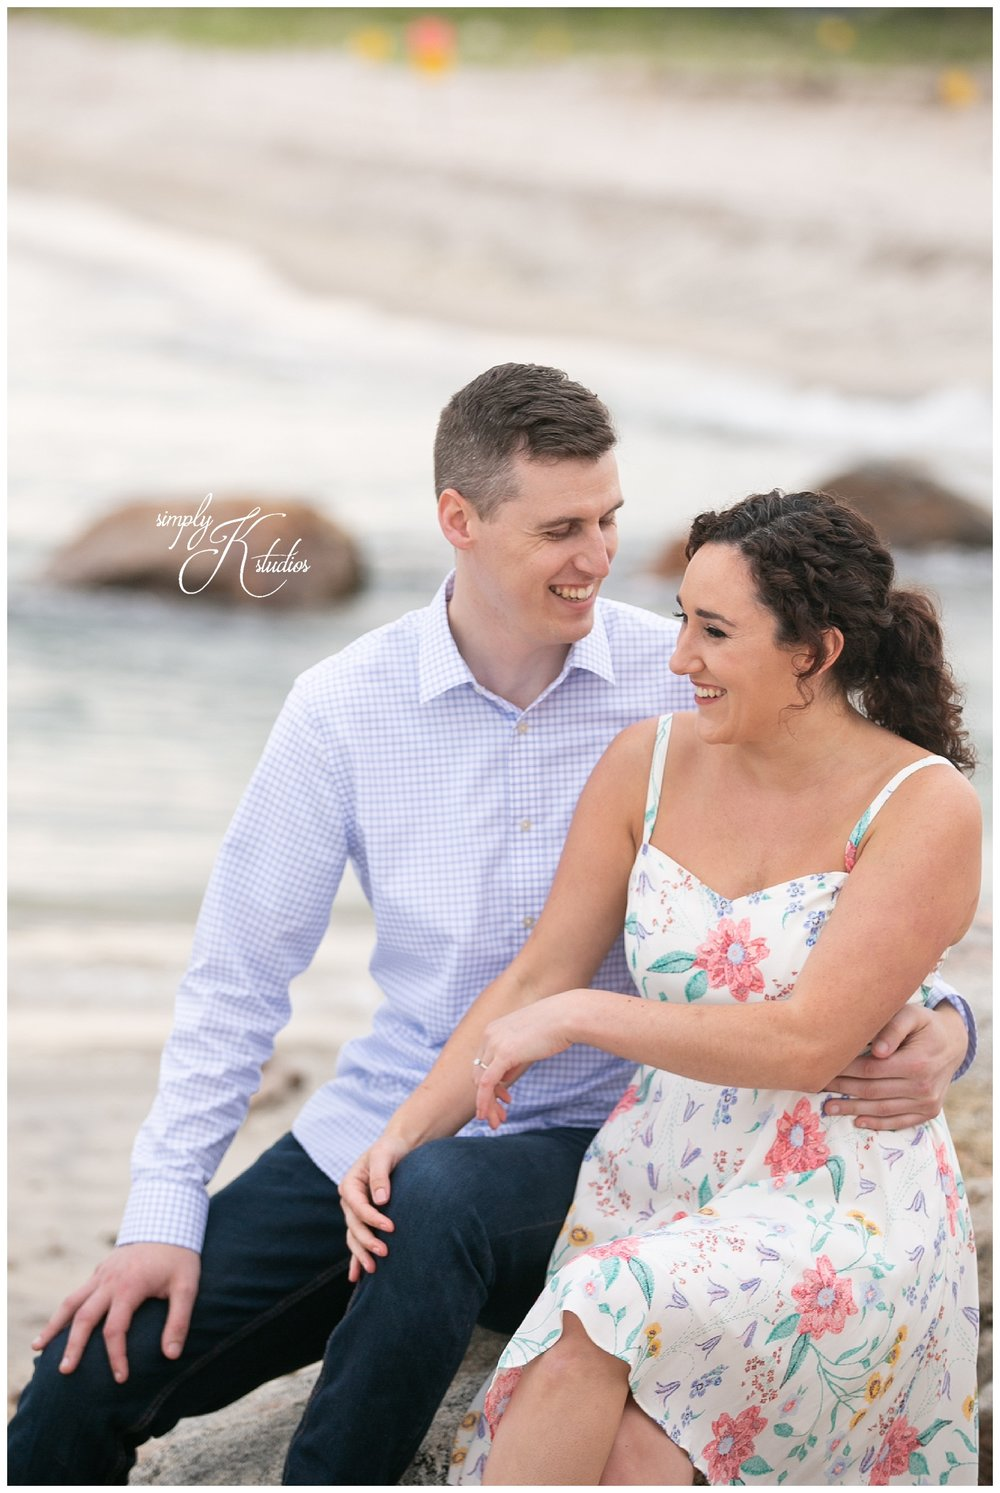 Engagement Sessions in CT.jpg